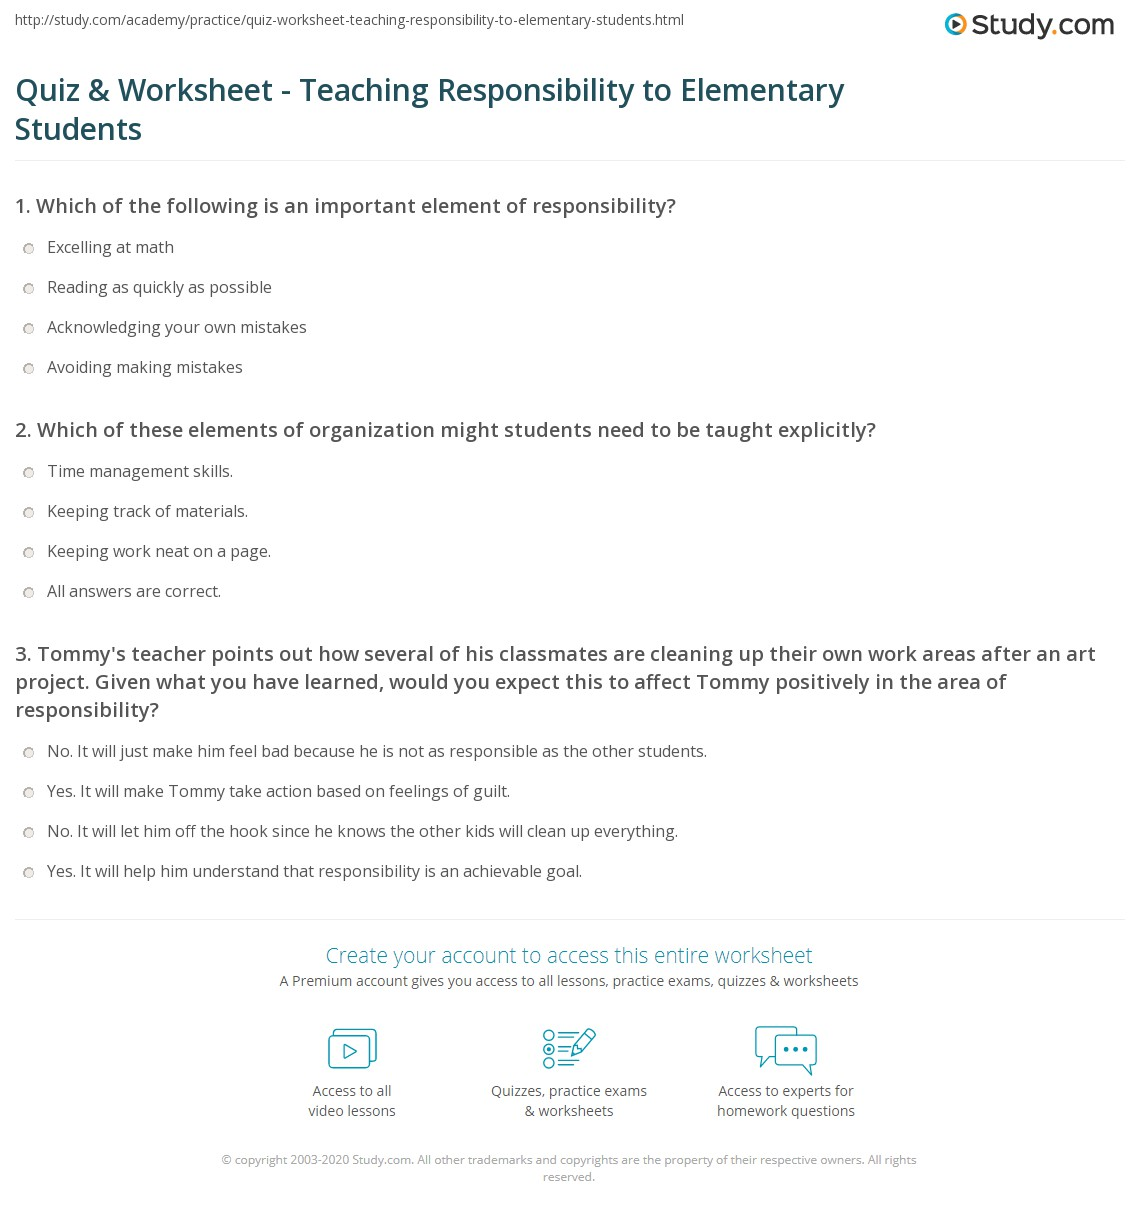 Worksheet For Teaching Responsibility